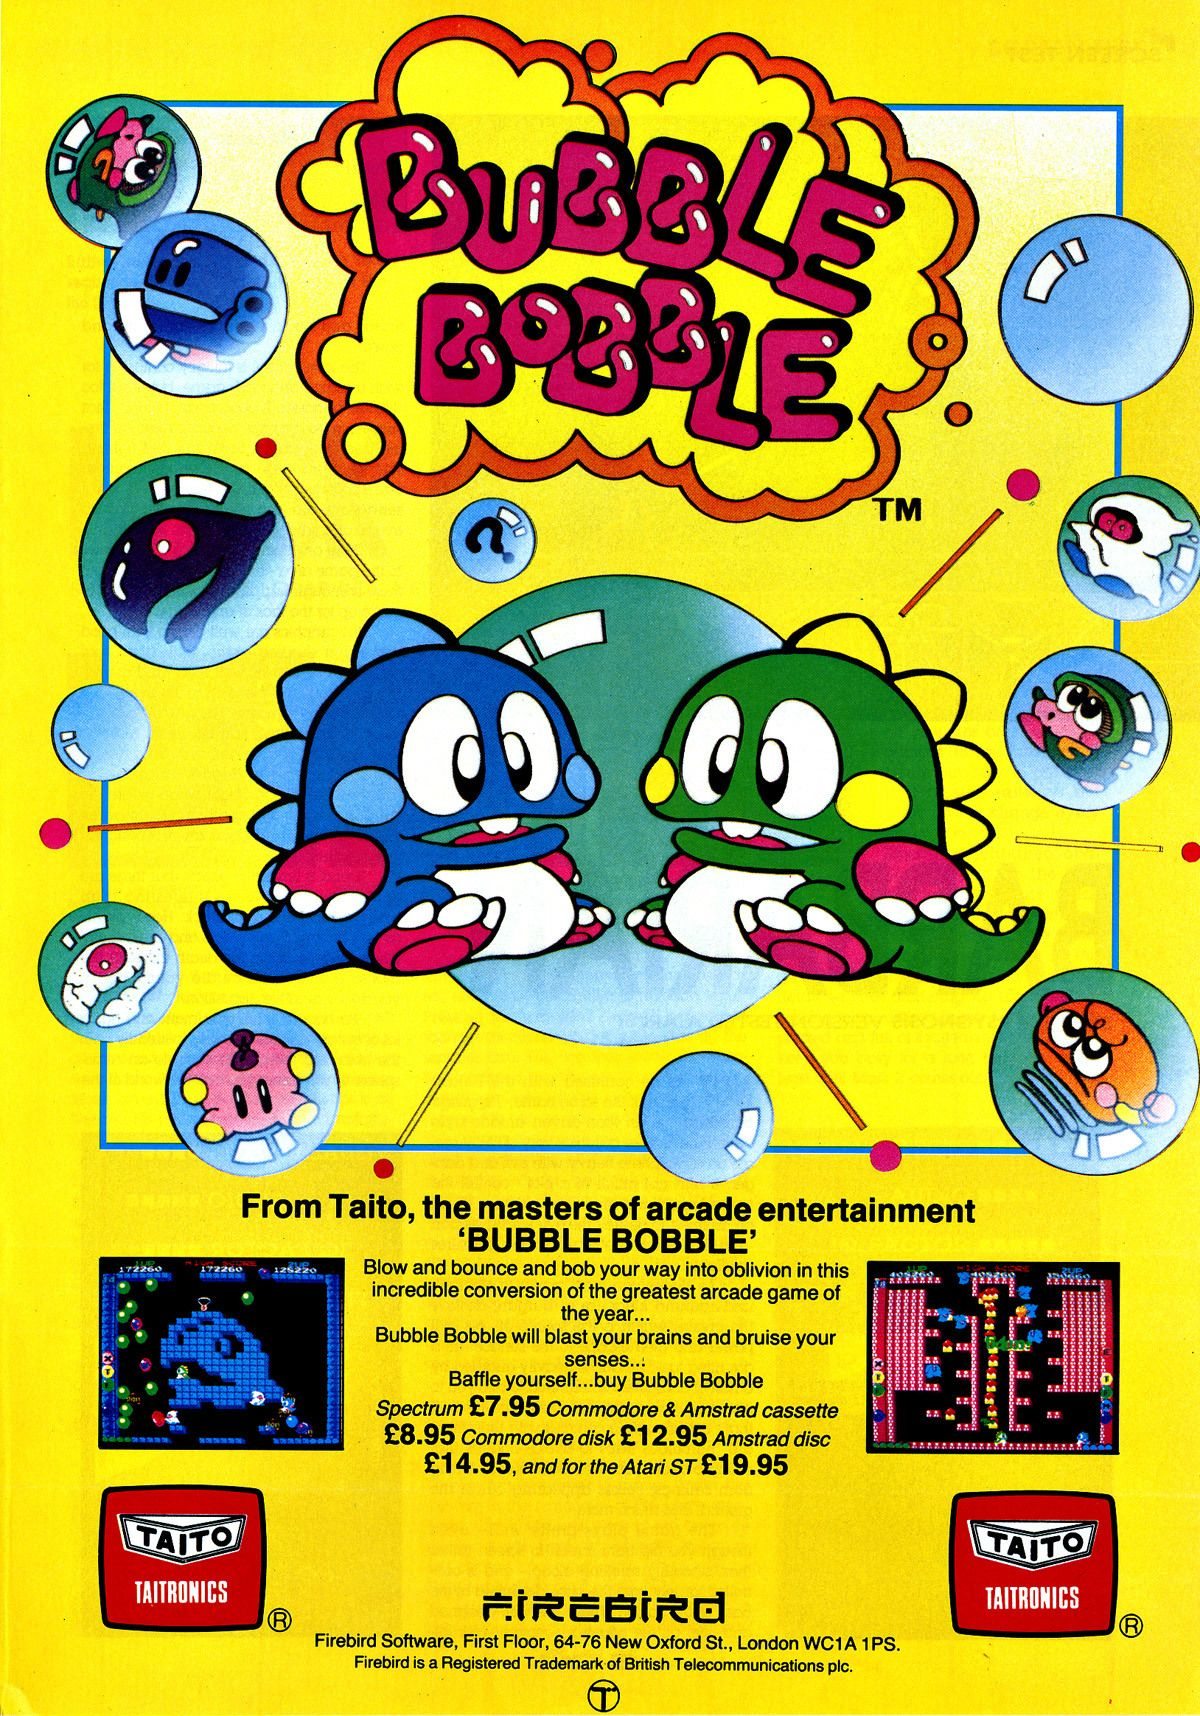 Bubble Bobble Video Games Posters Your 1 Source for